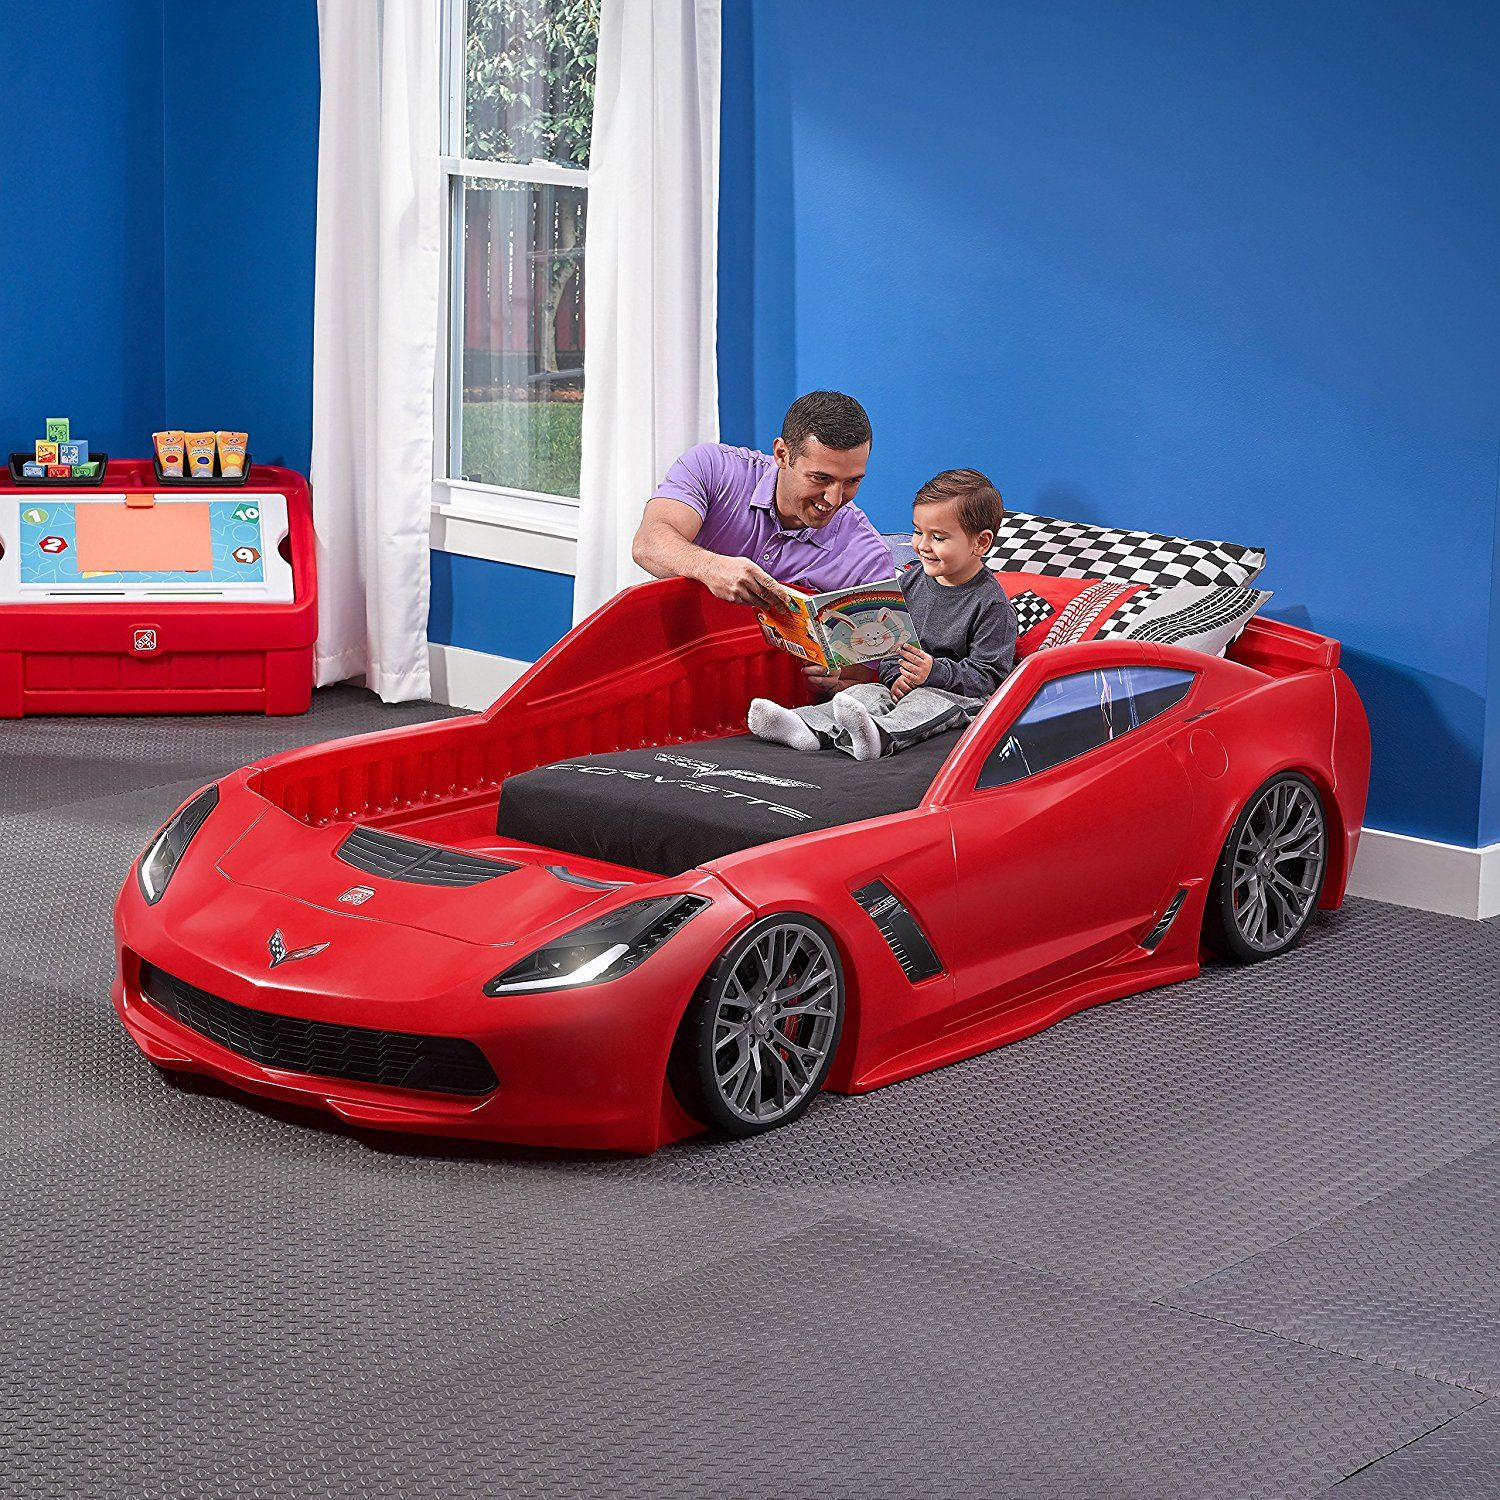 Z06 Toddler Bed to Twin Bed (With images) Toddler car